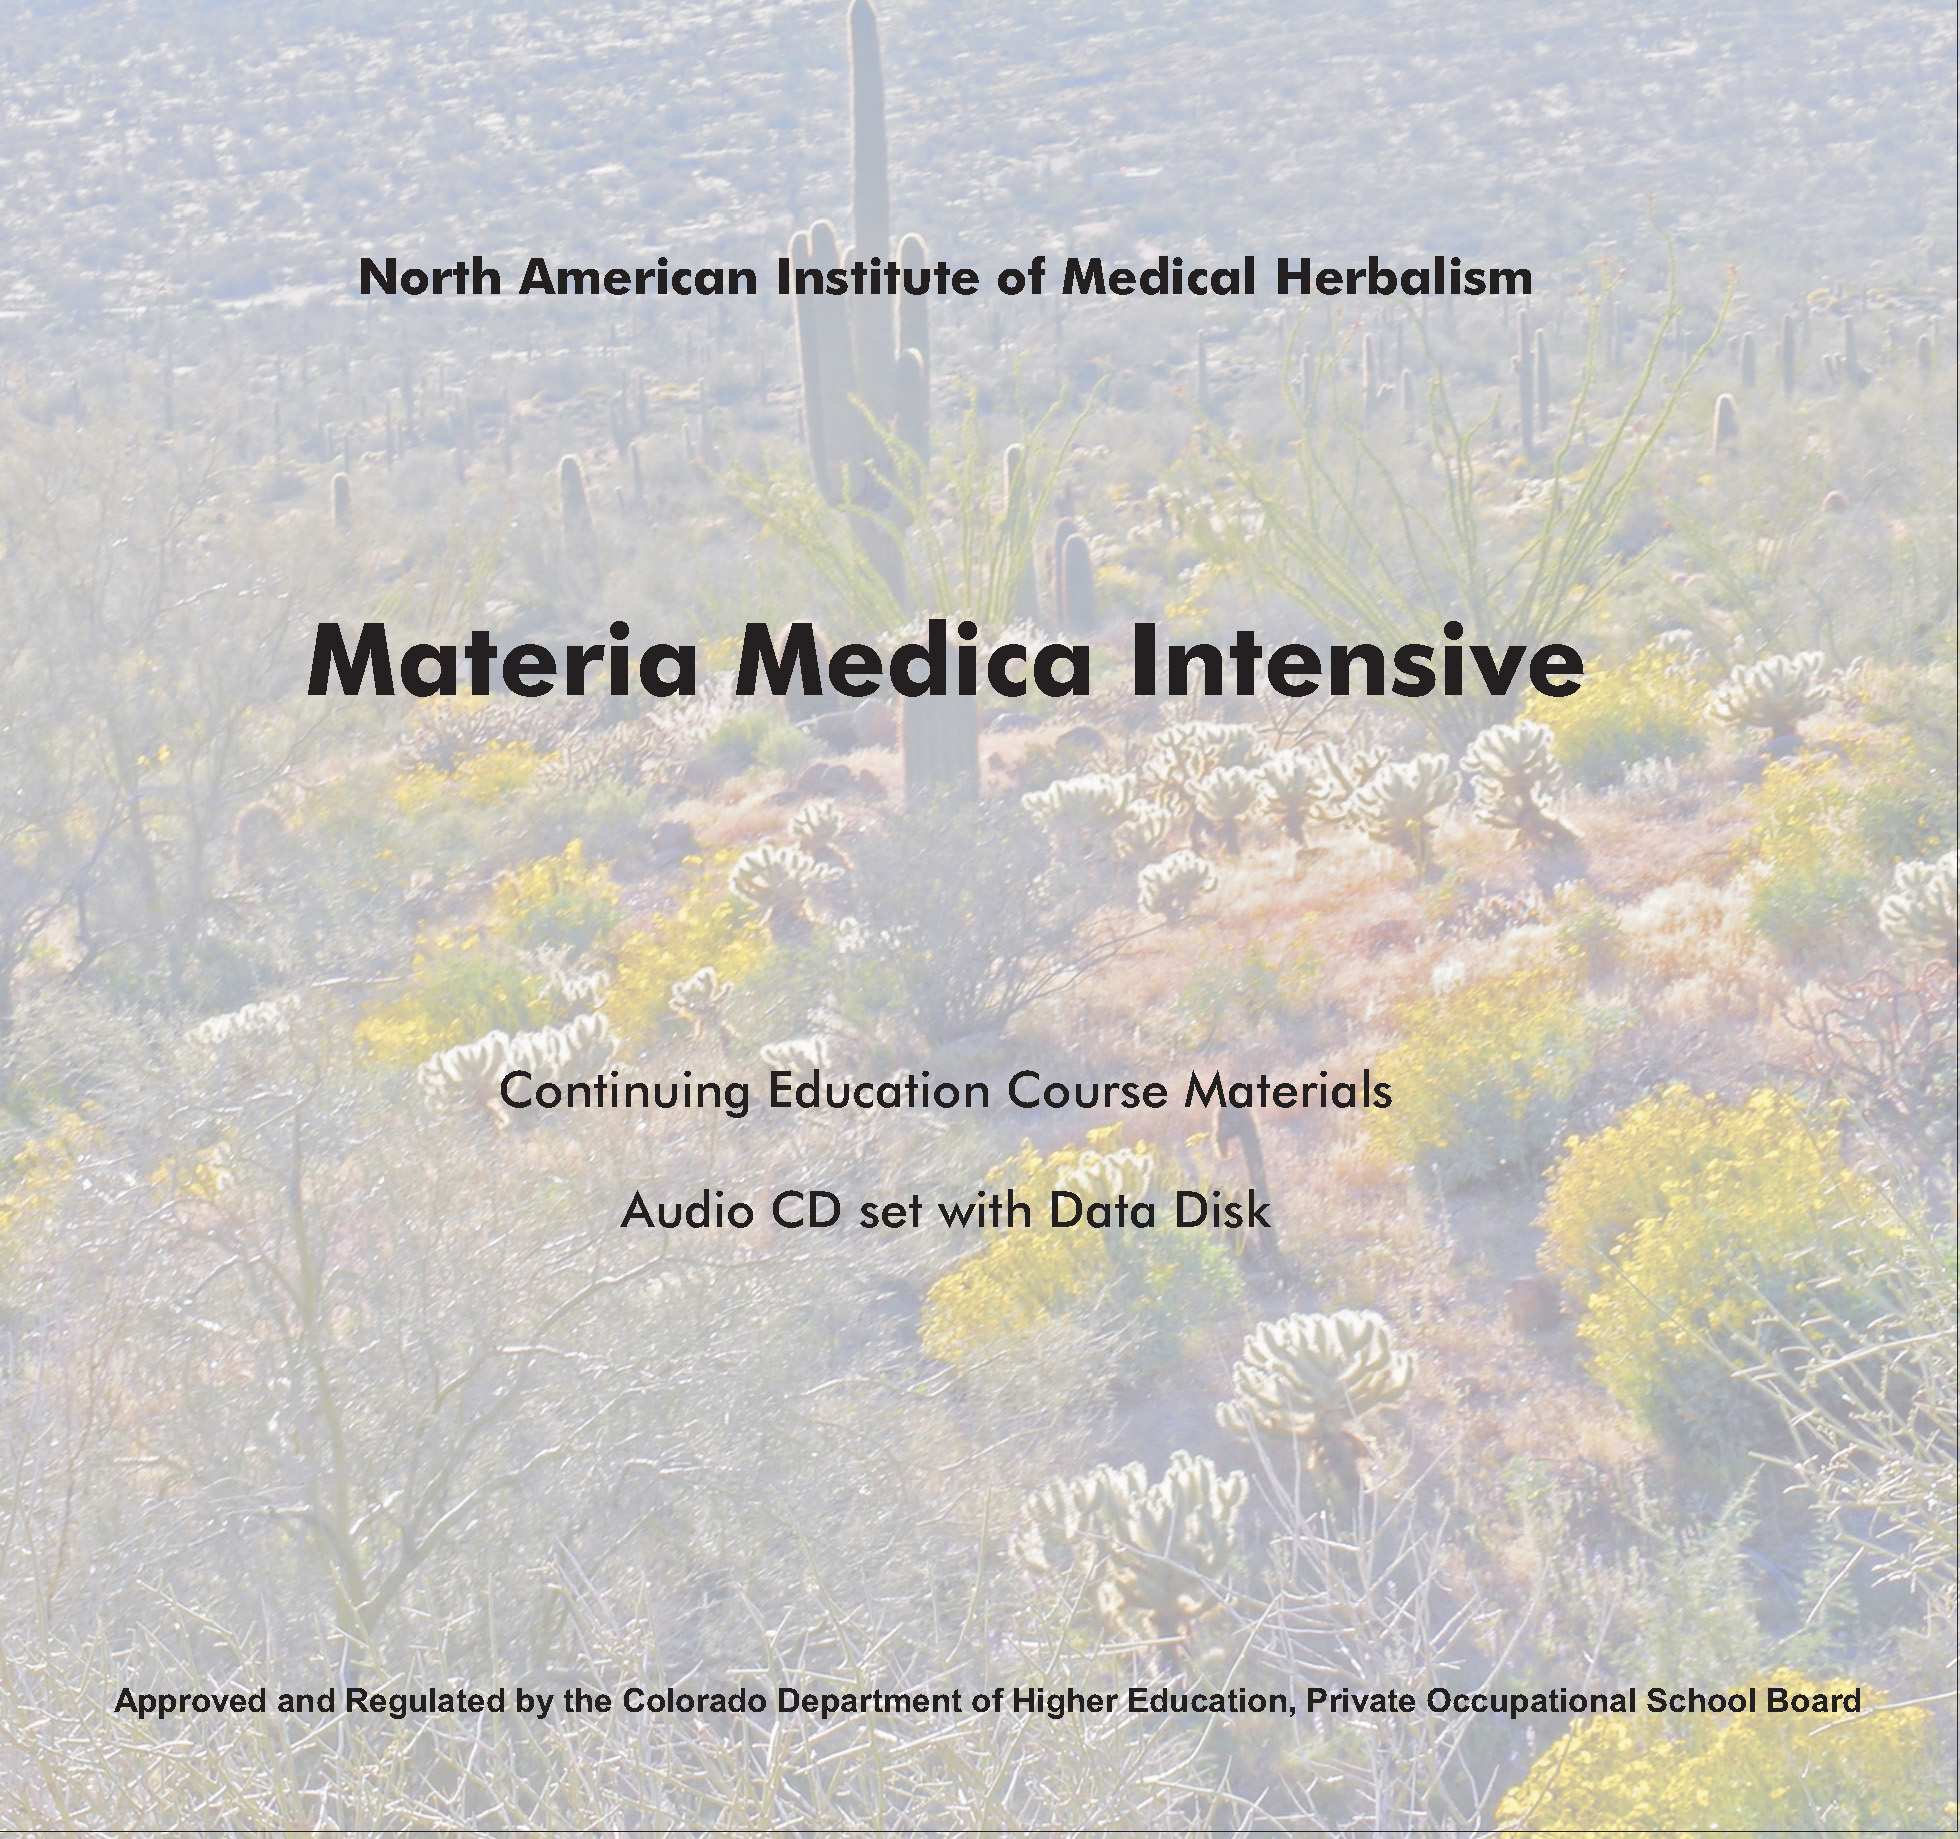 NAIMH Materia Medica Intensive : Continuing Education Course Materials Audia CDs  North American Institute of Medical Herbalism